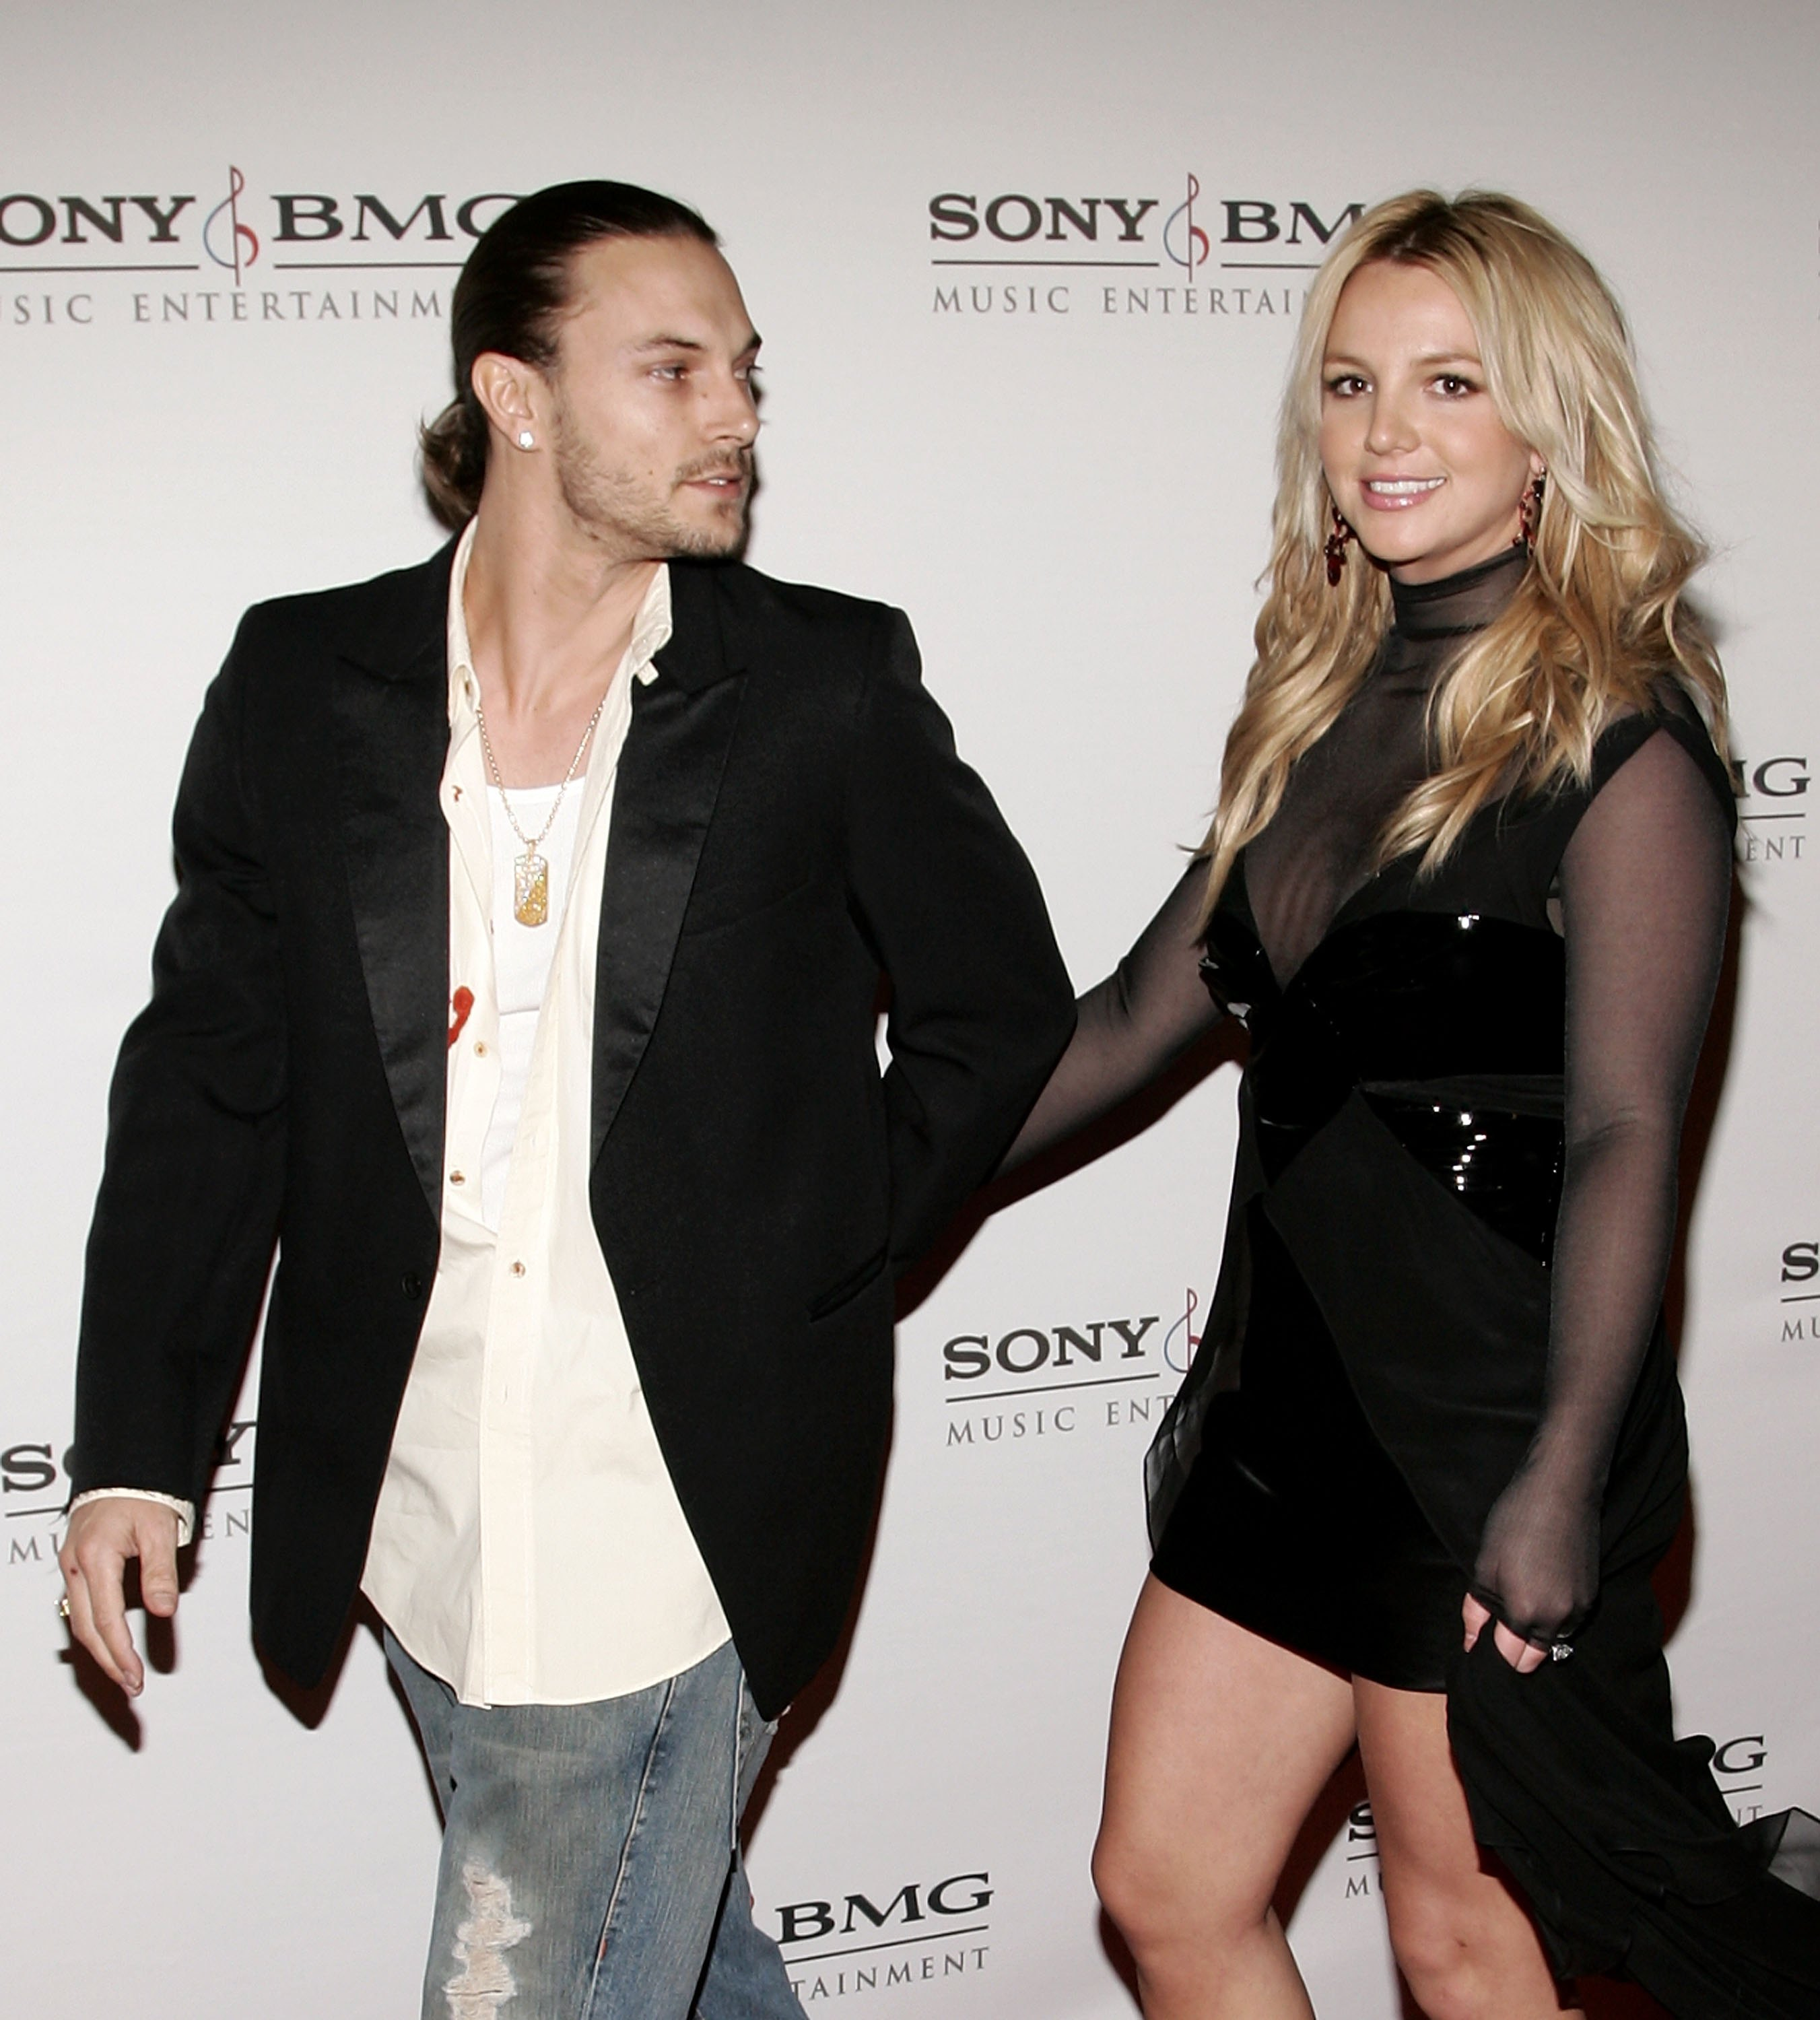 Kevin Federline's brother Christopher claims to be father of Britney Spears's son